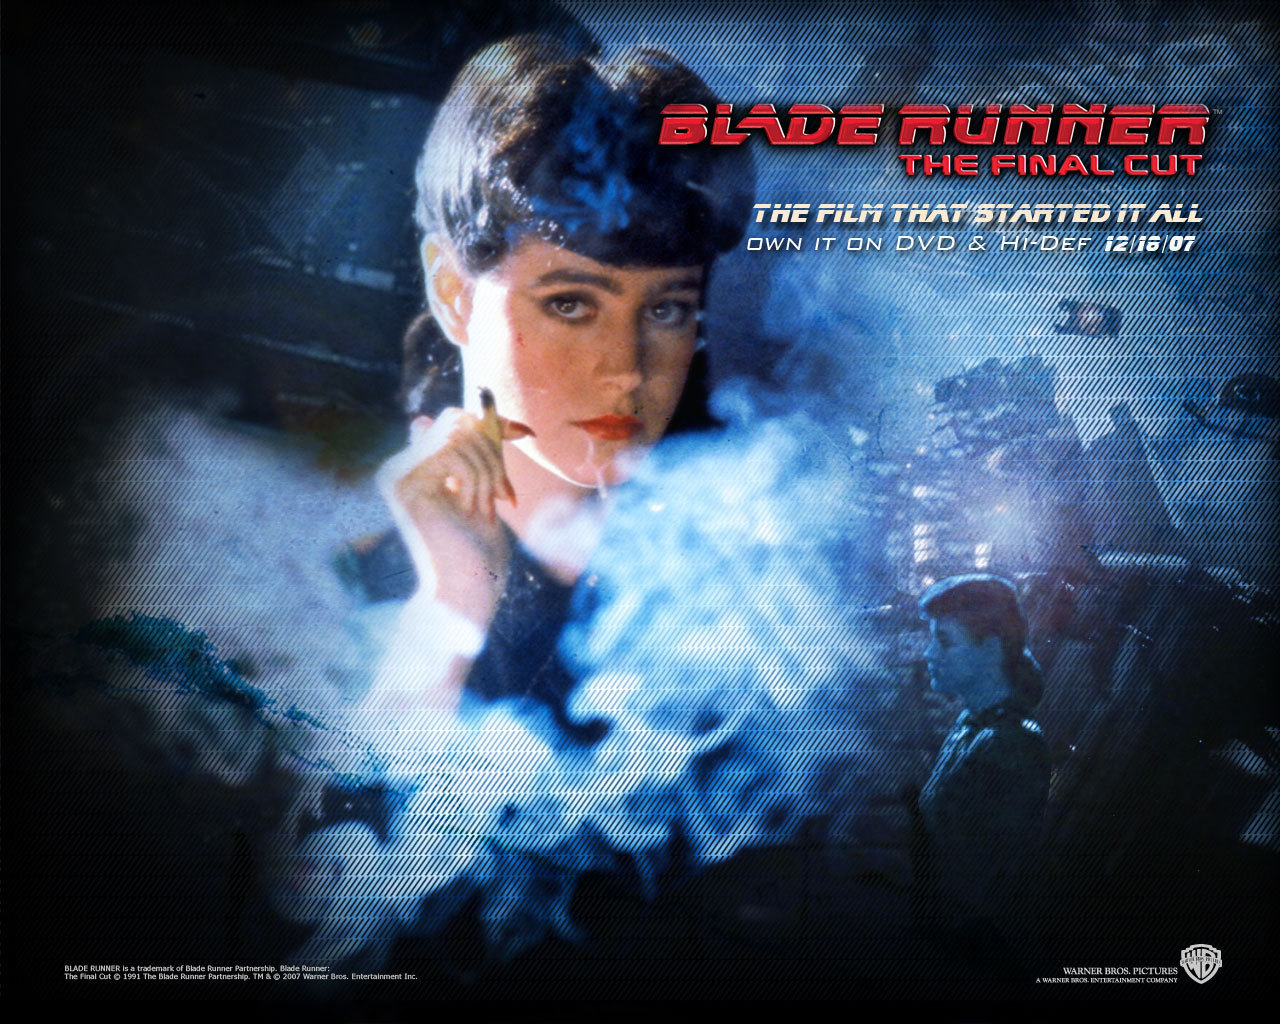 Official Blade Runner Wallpaper   Blade Runner Wallpaper 8207474 1280x1024